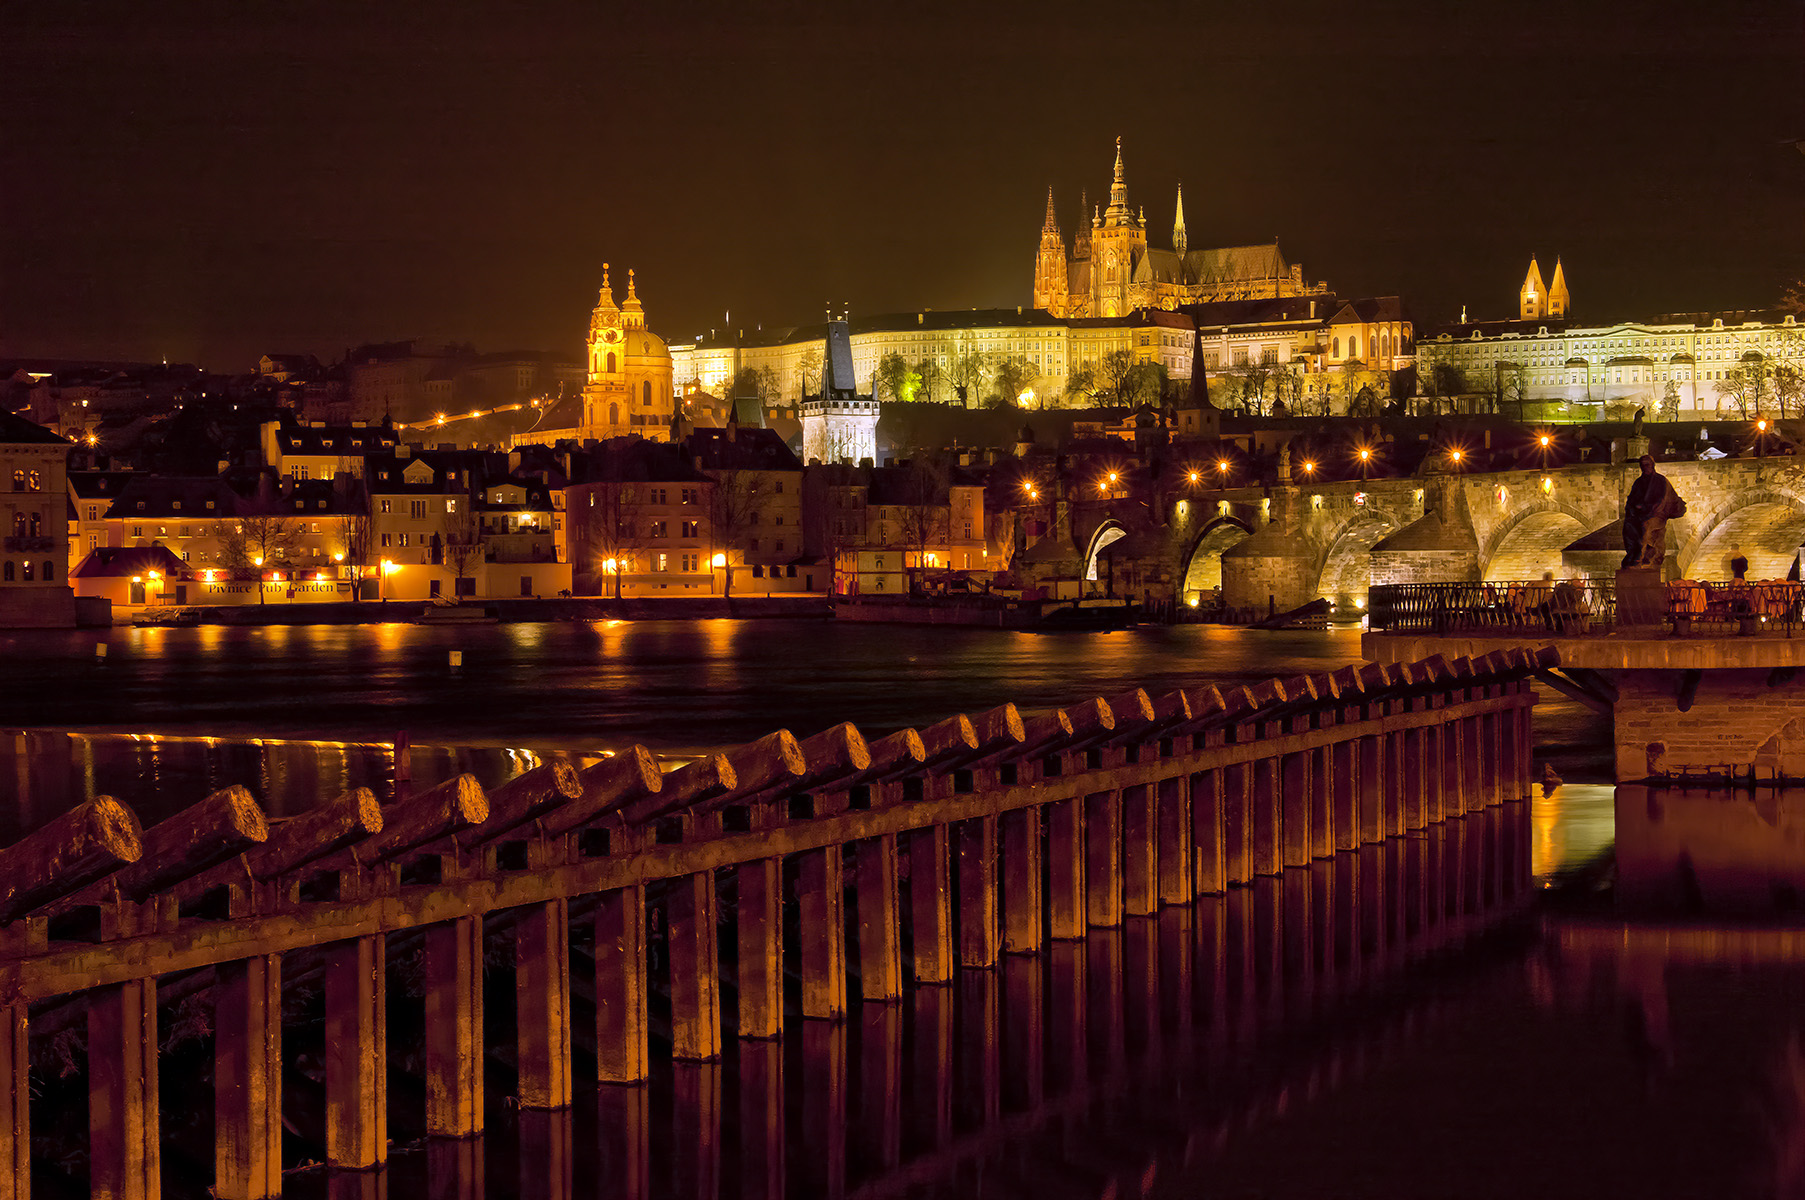 Night exposures and lighting resulted in the golden look of Prague Castle.